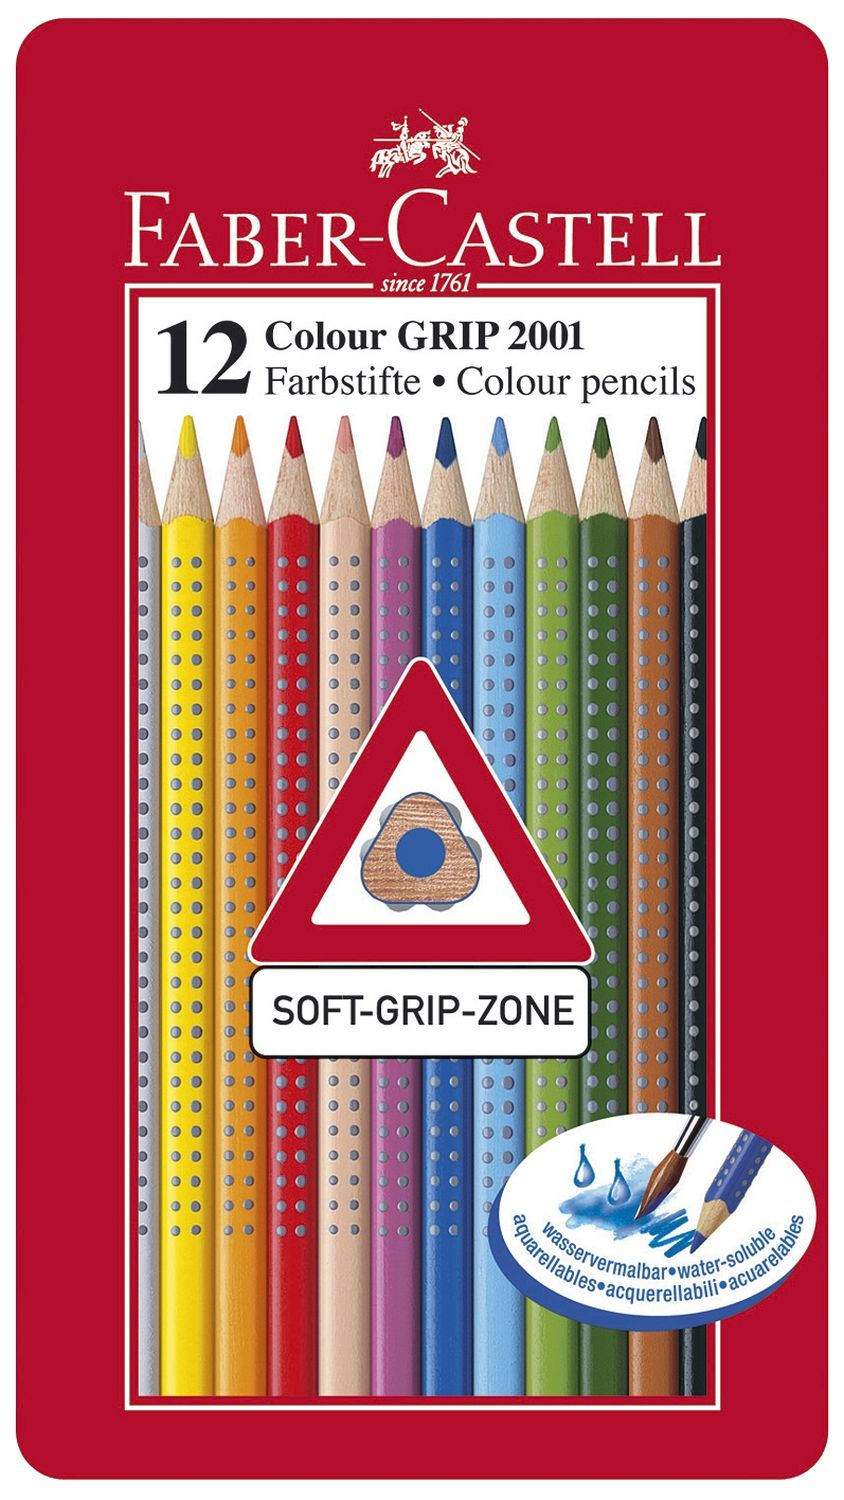 Faber-Castell Colour Grip Buntstifte 12 Farben im Metalletui